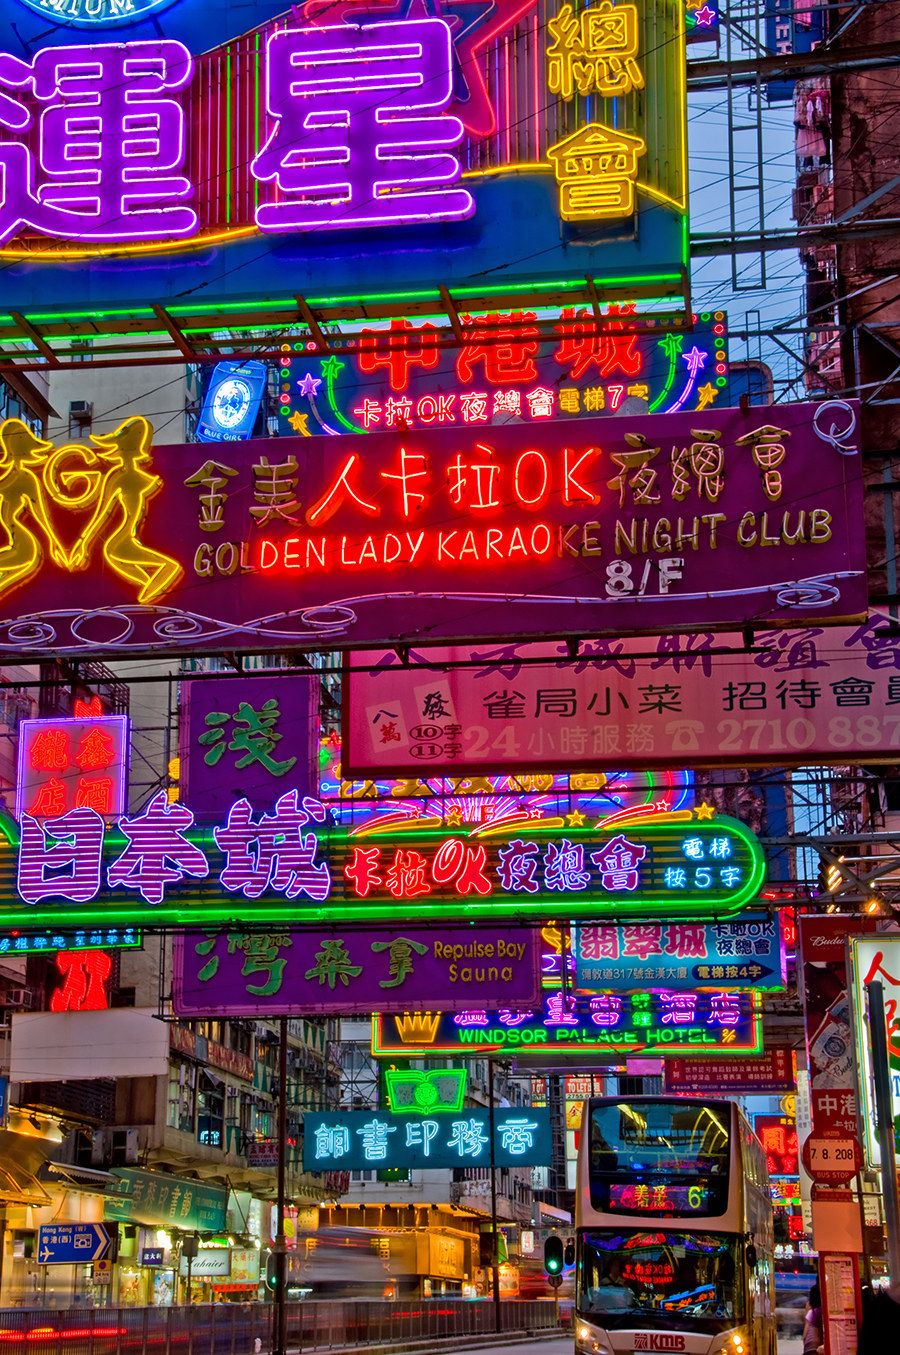 21 Most Colorful And Vibrant Places In The World